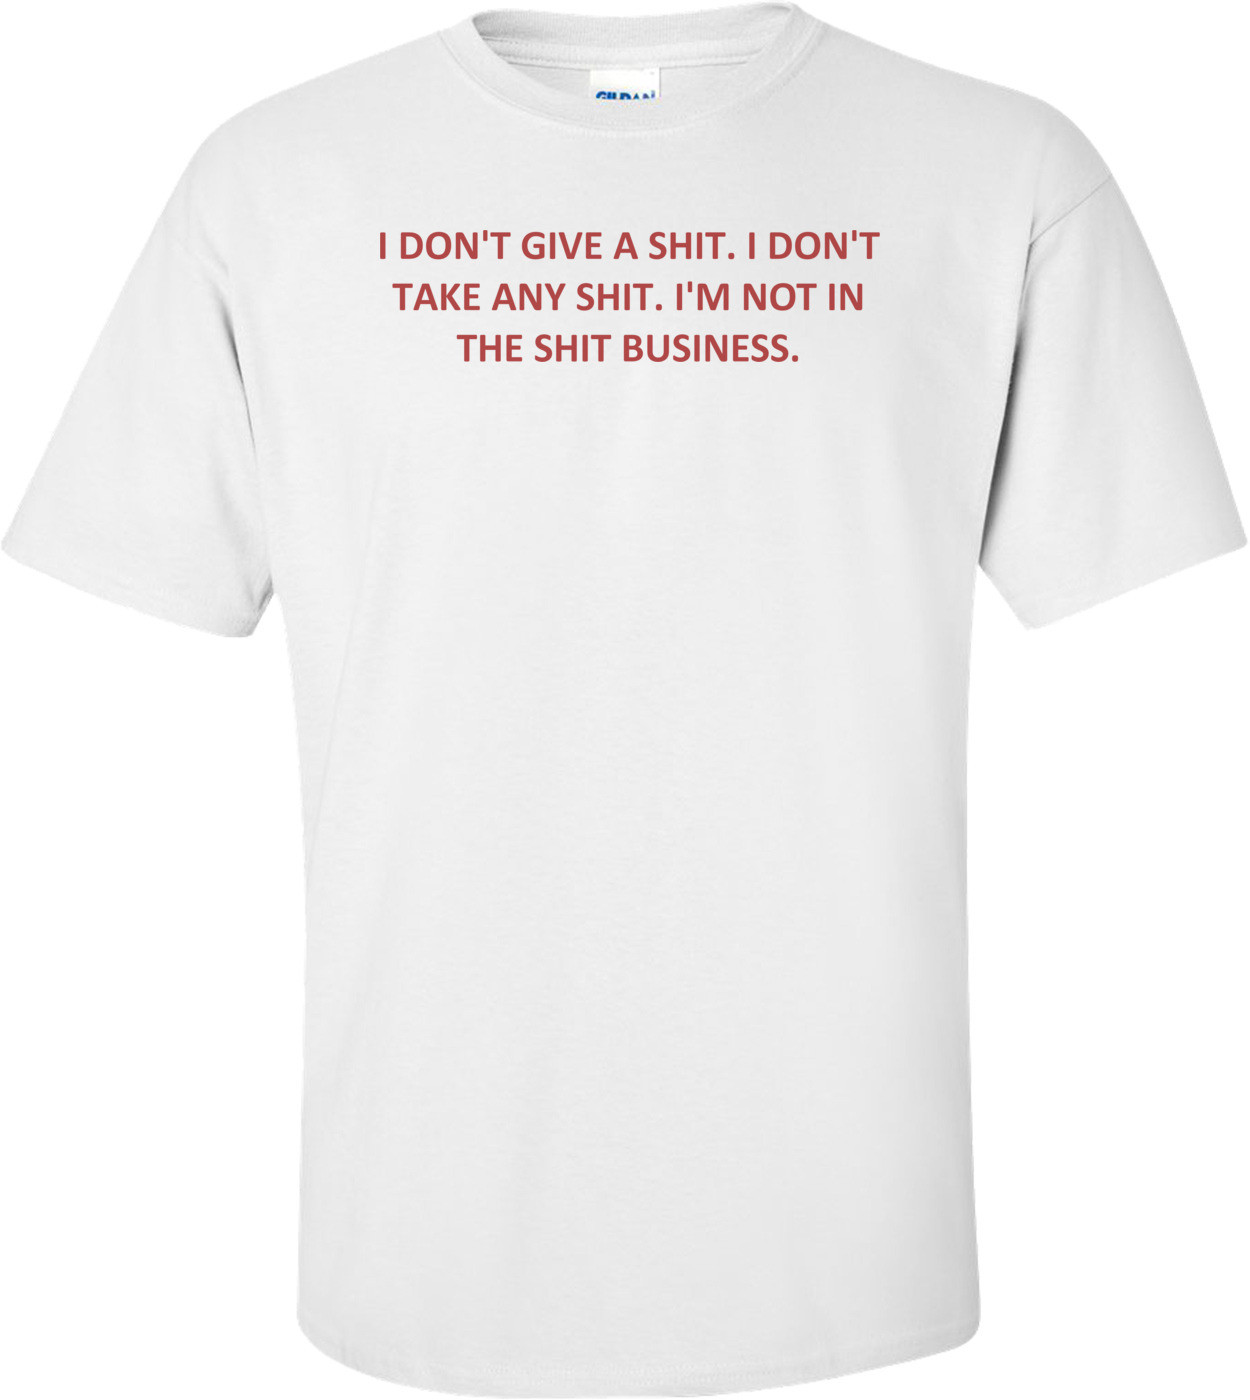 I DON'T GIVE A SHIT. I DON'T TAKE ANY SHIT. I'M NOT IN THE SHIT BUSINESS. Shirt